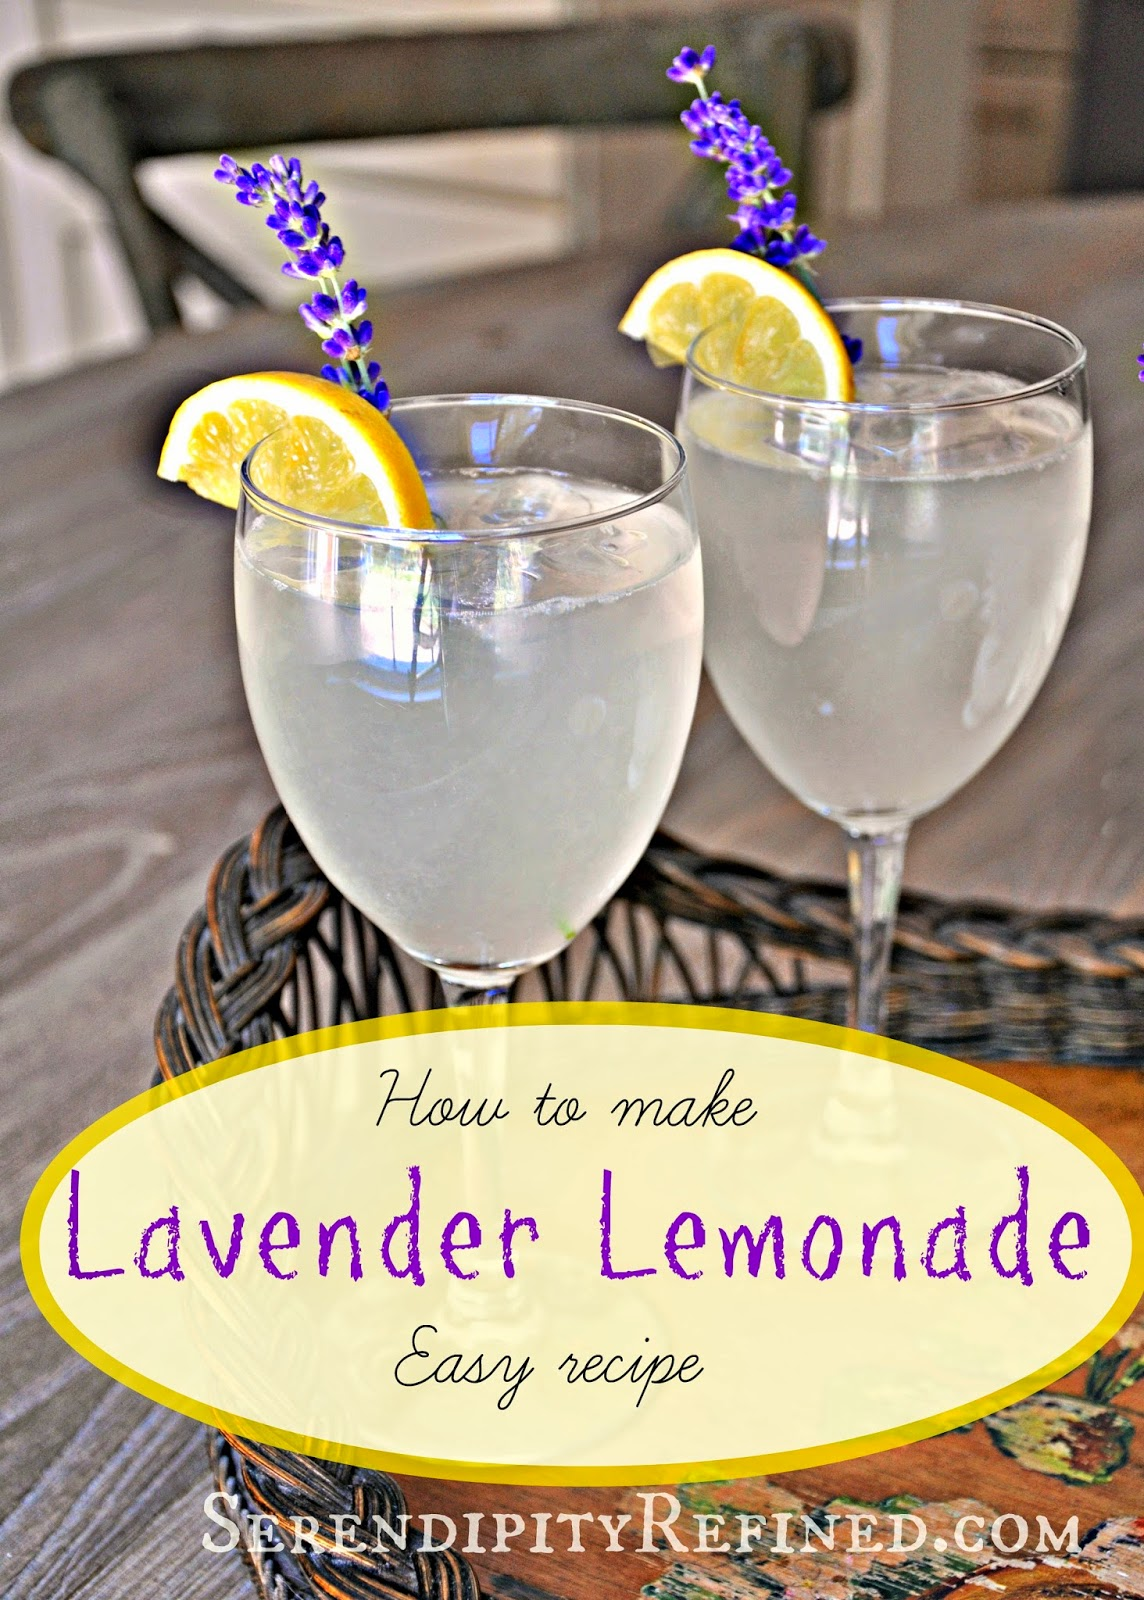 Lavender infused lemonade recipe by Serendipity Refined